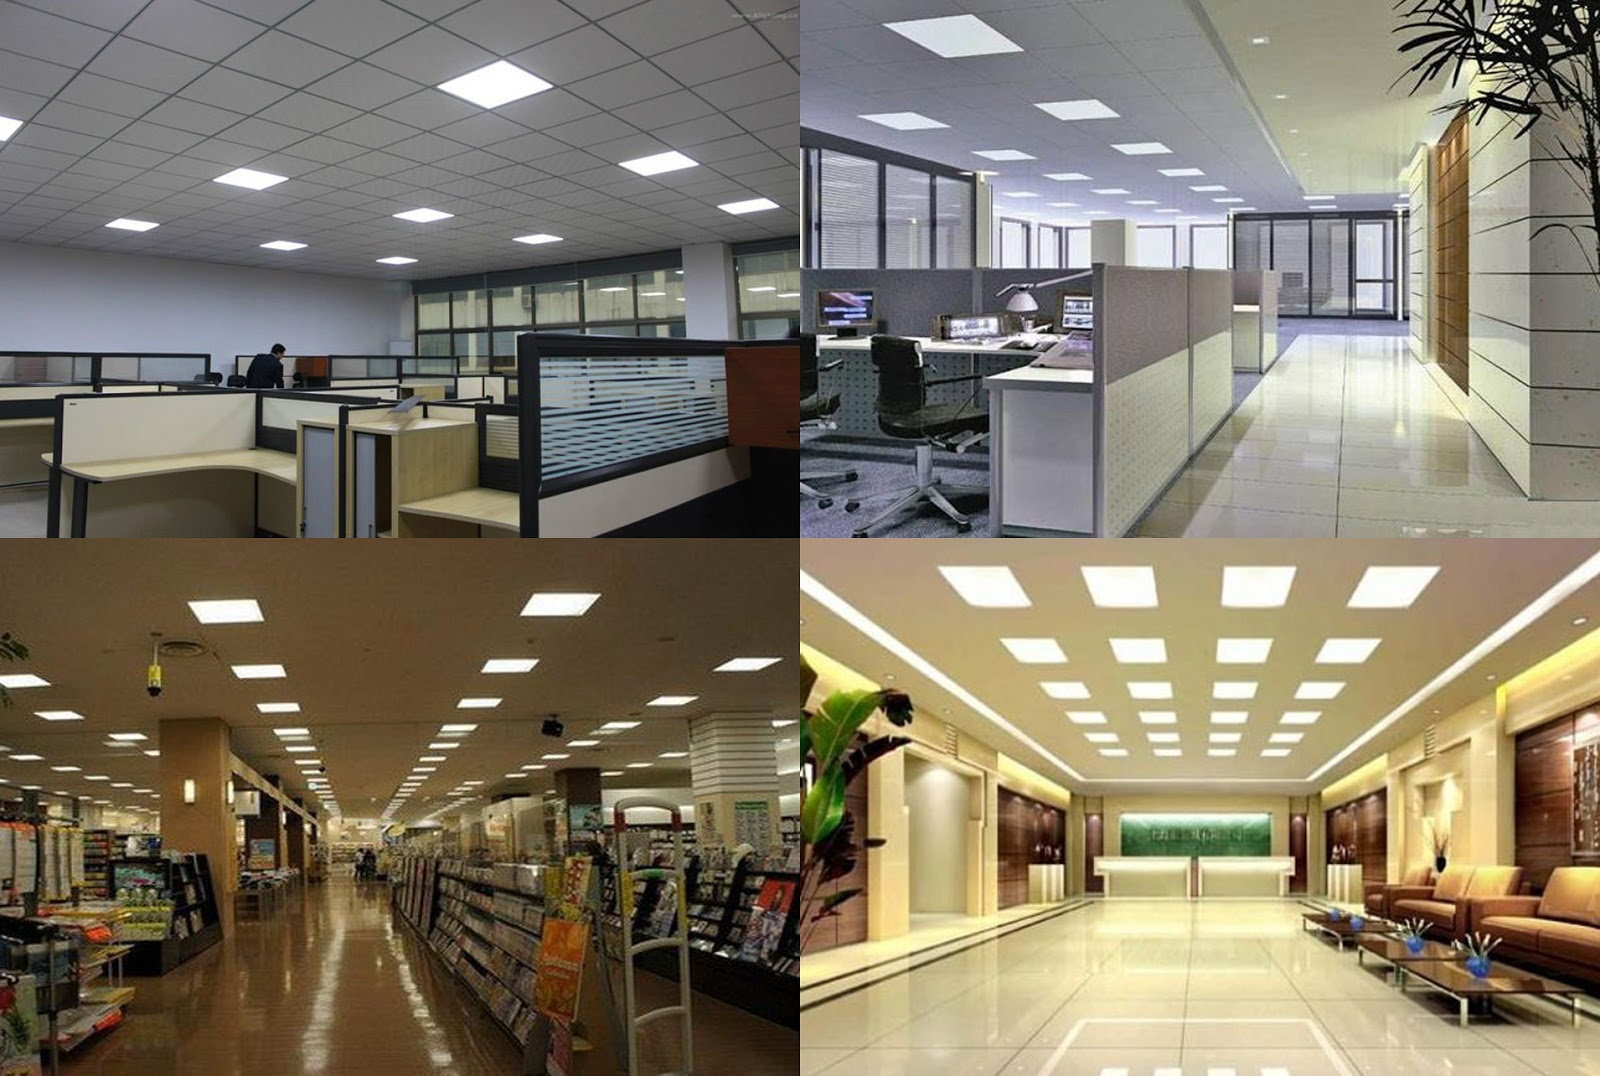 How green is is led lighting guardian services plus qualified led lighting produces virtually no heat and provides optimal light color for any environment from parking lots to high end show rooms aloadofball Images